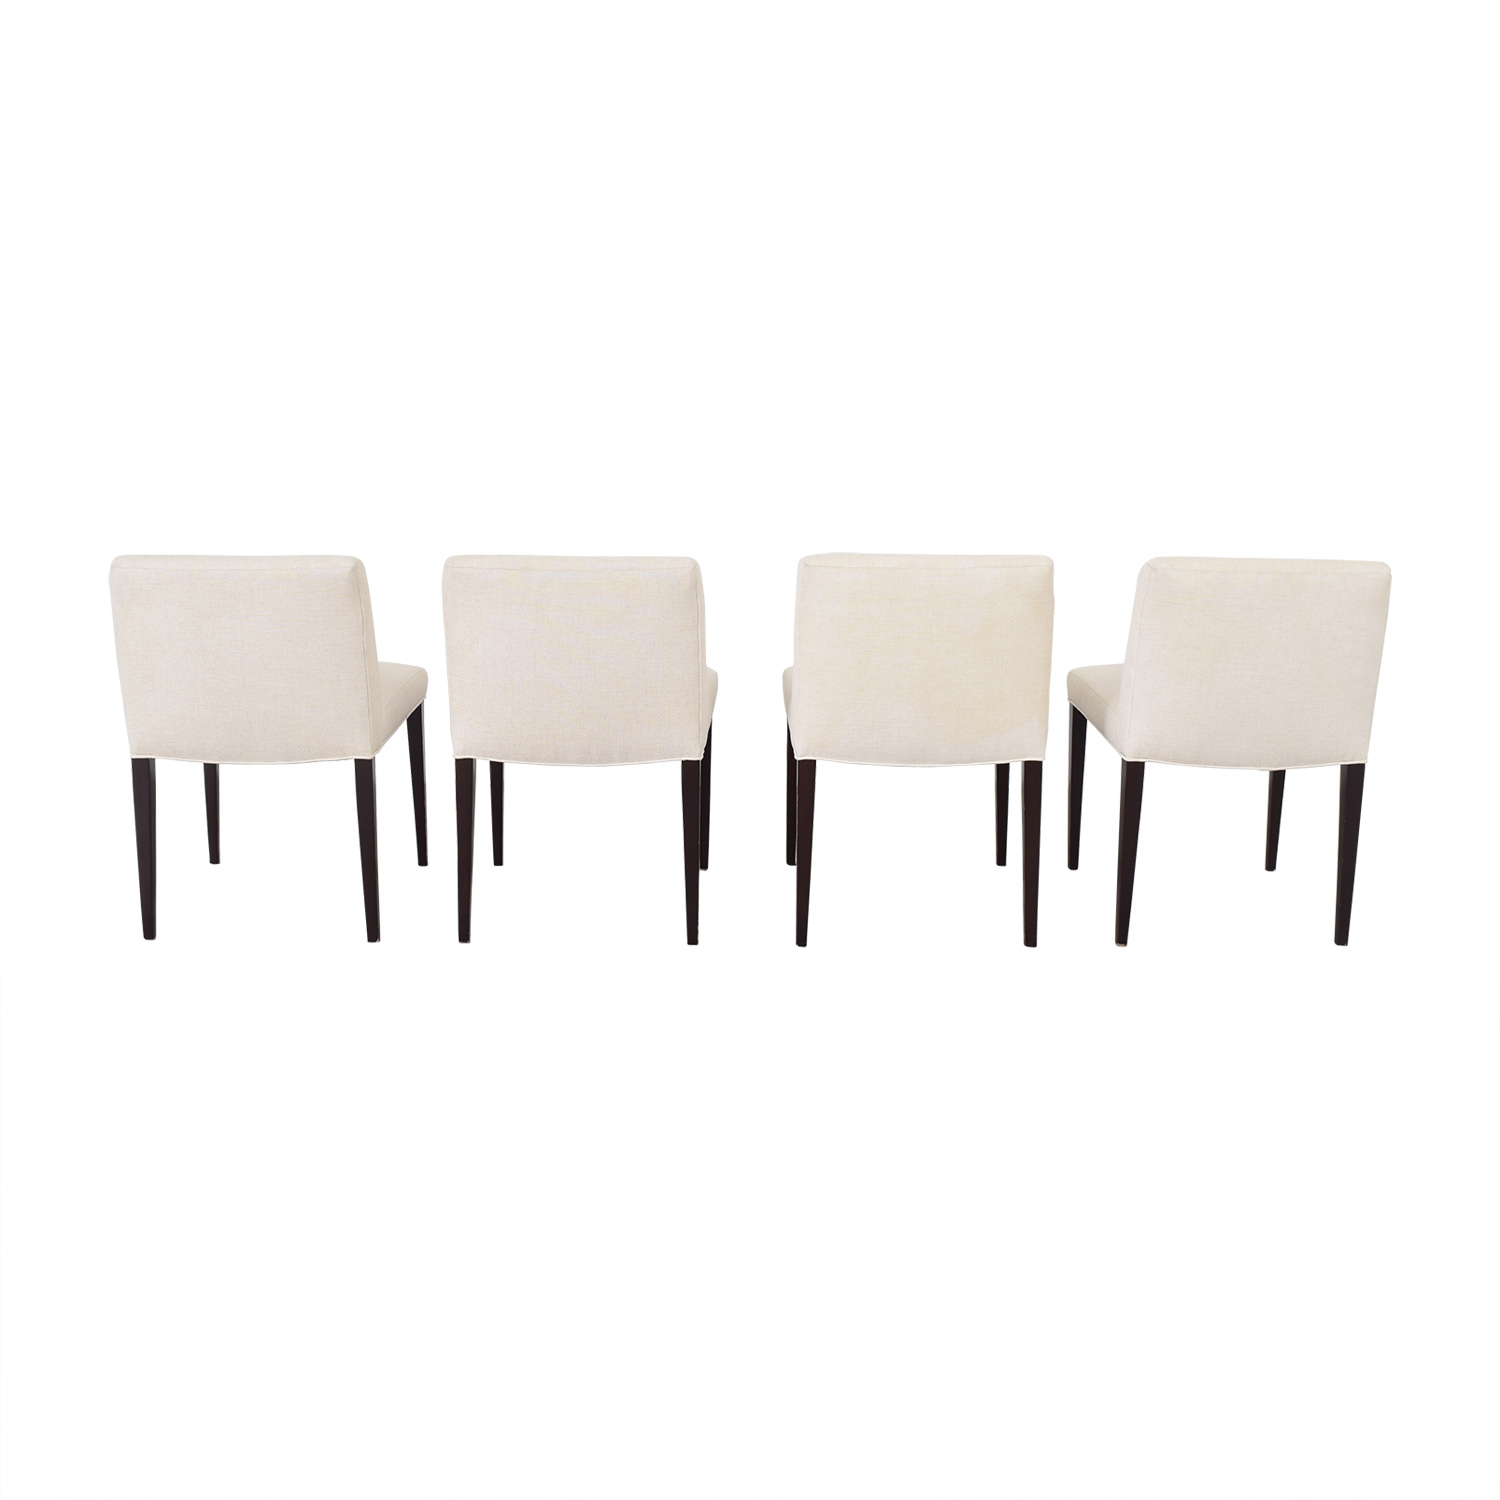 Upholstered Dining Chairs for sale